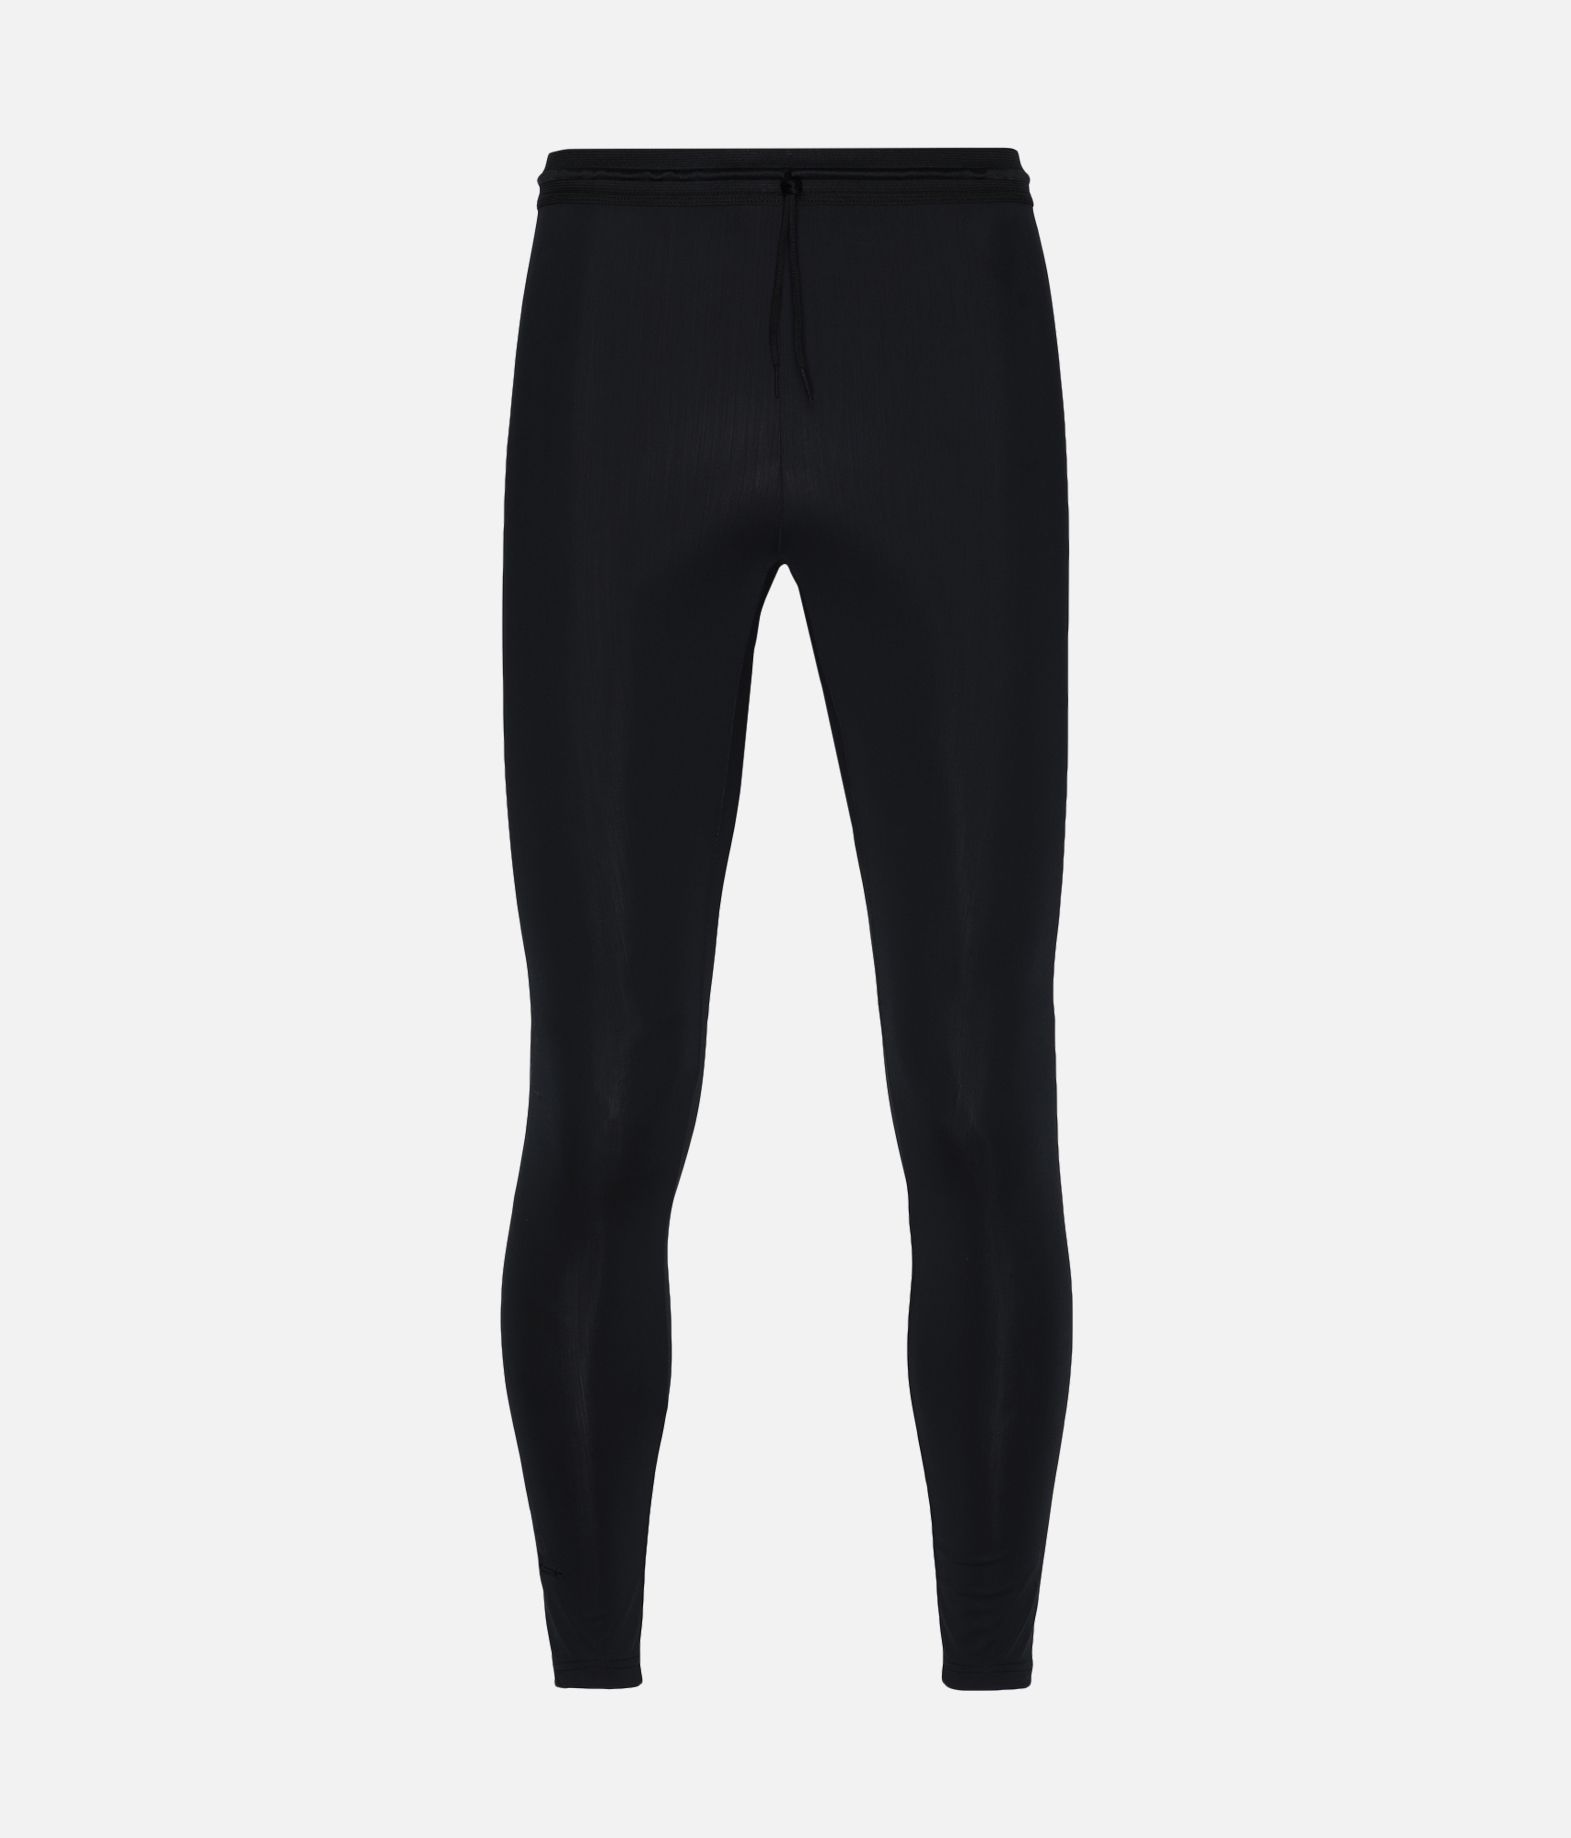 Y-3 Y-3 New Classic Tights Leggings Herren f